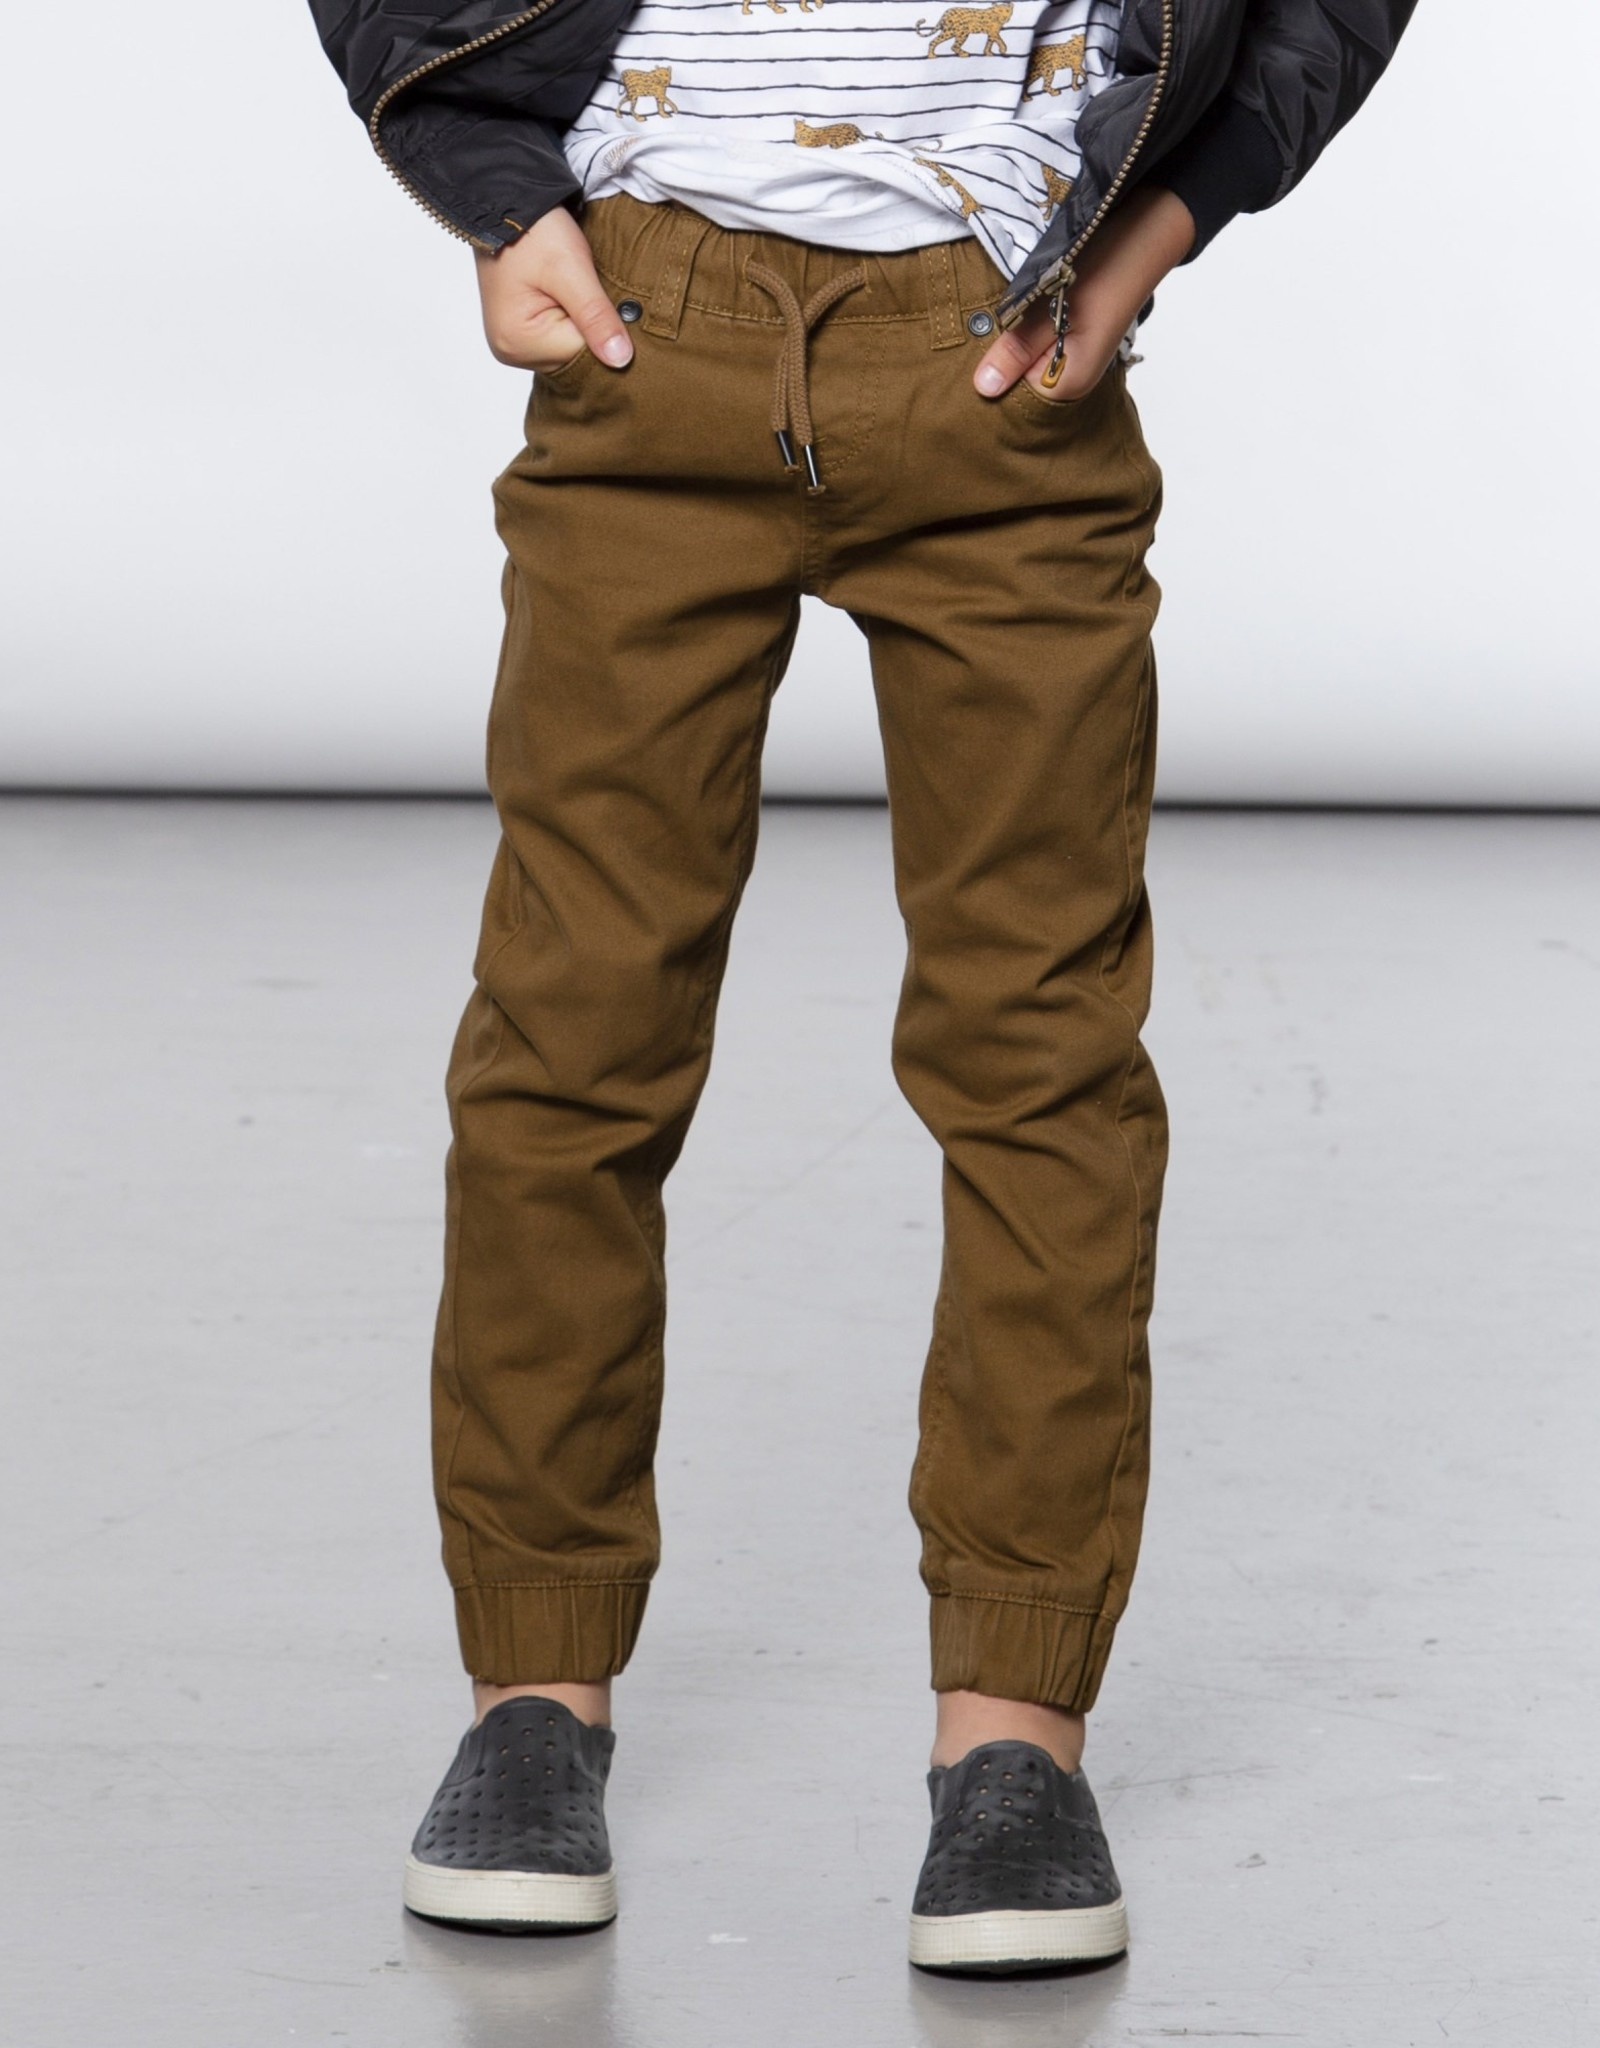 DeuxParDeux Twill Jogger - Camo or Brown